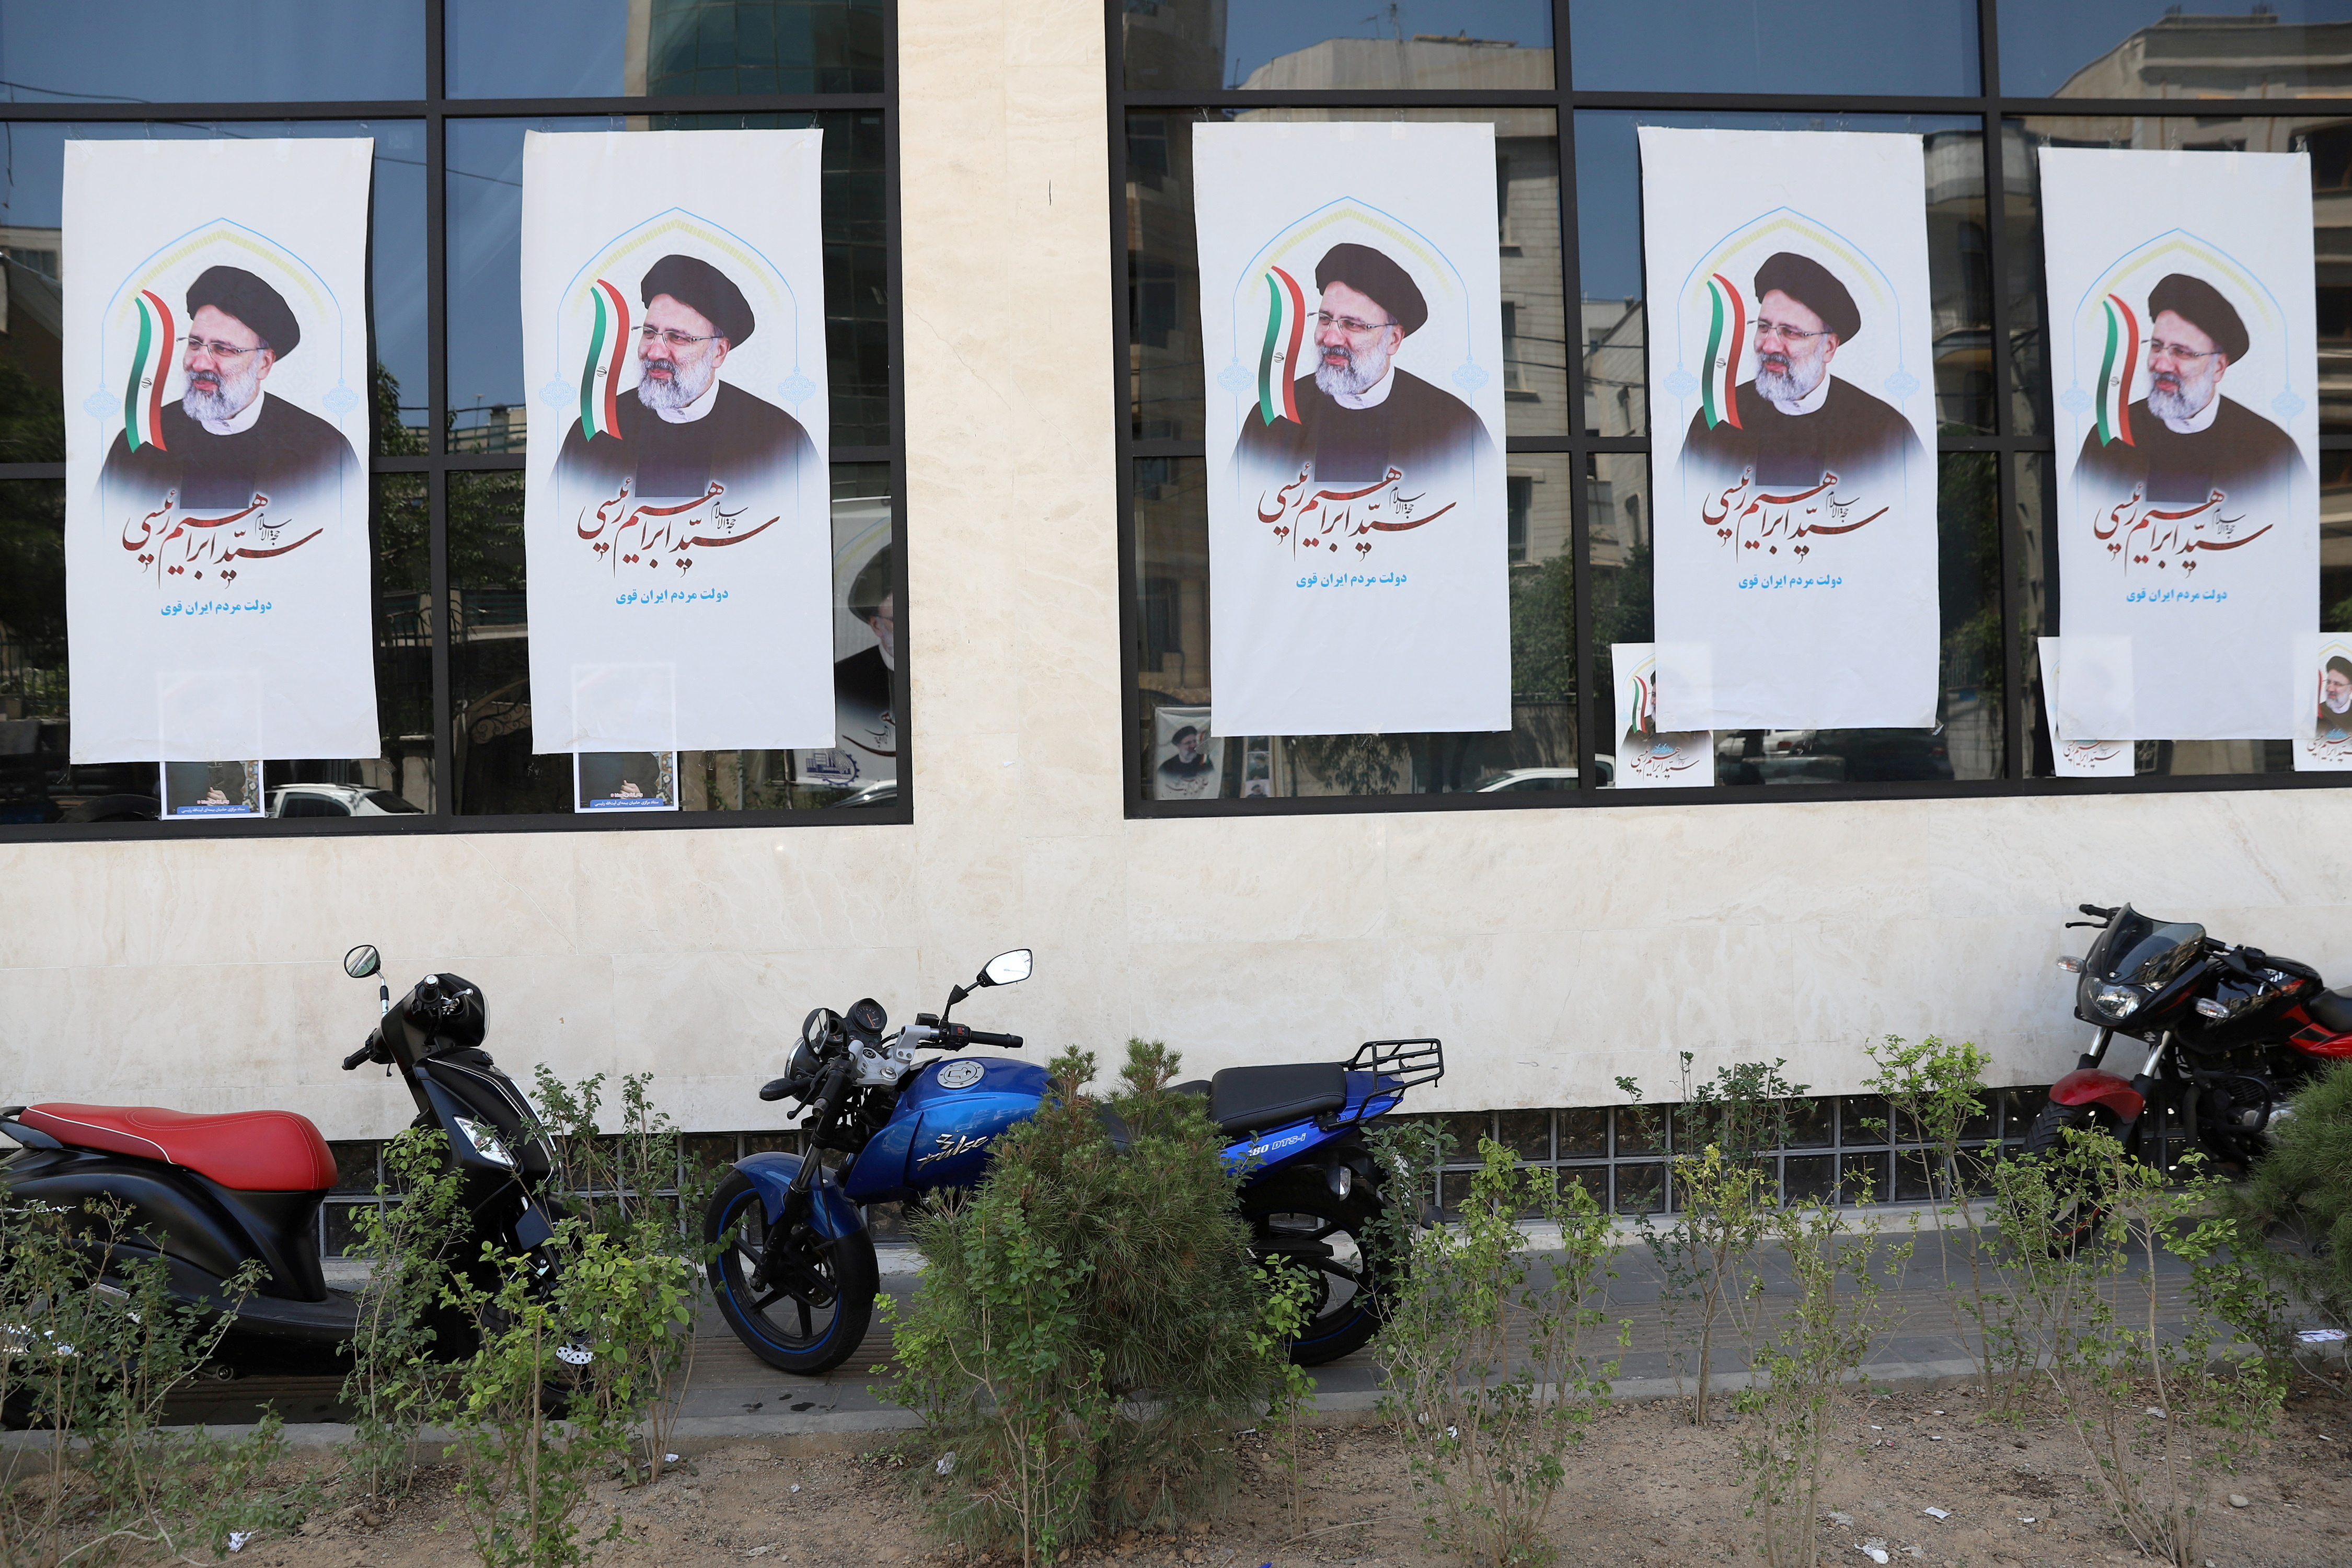 Posters of presidential candidate Ebrahim Raisi are seen at a campaign center in Tehran, Iran June 4, 2021. Majid Asgaripour/WANA (West Asia News Agency) via REUTERS